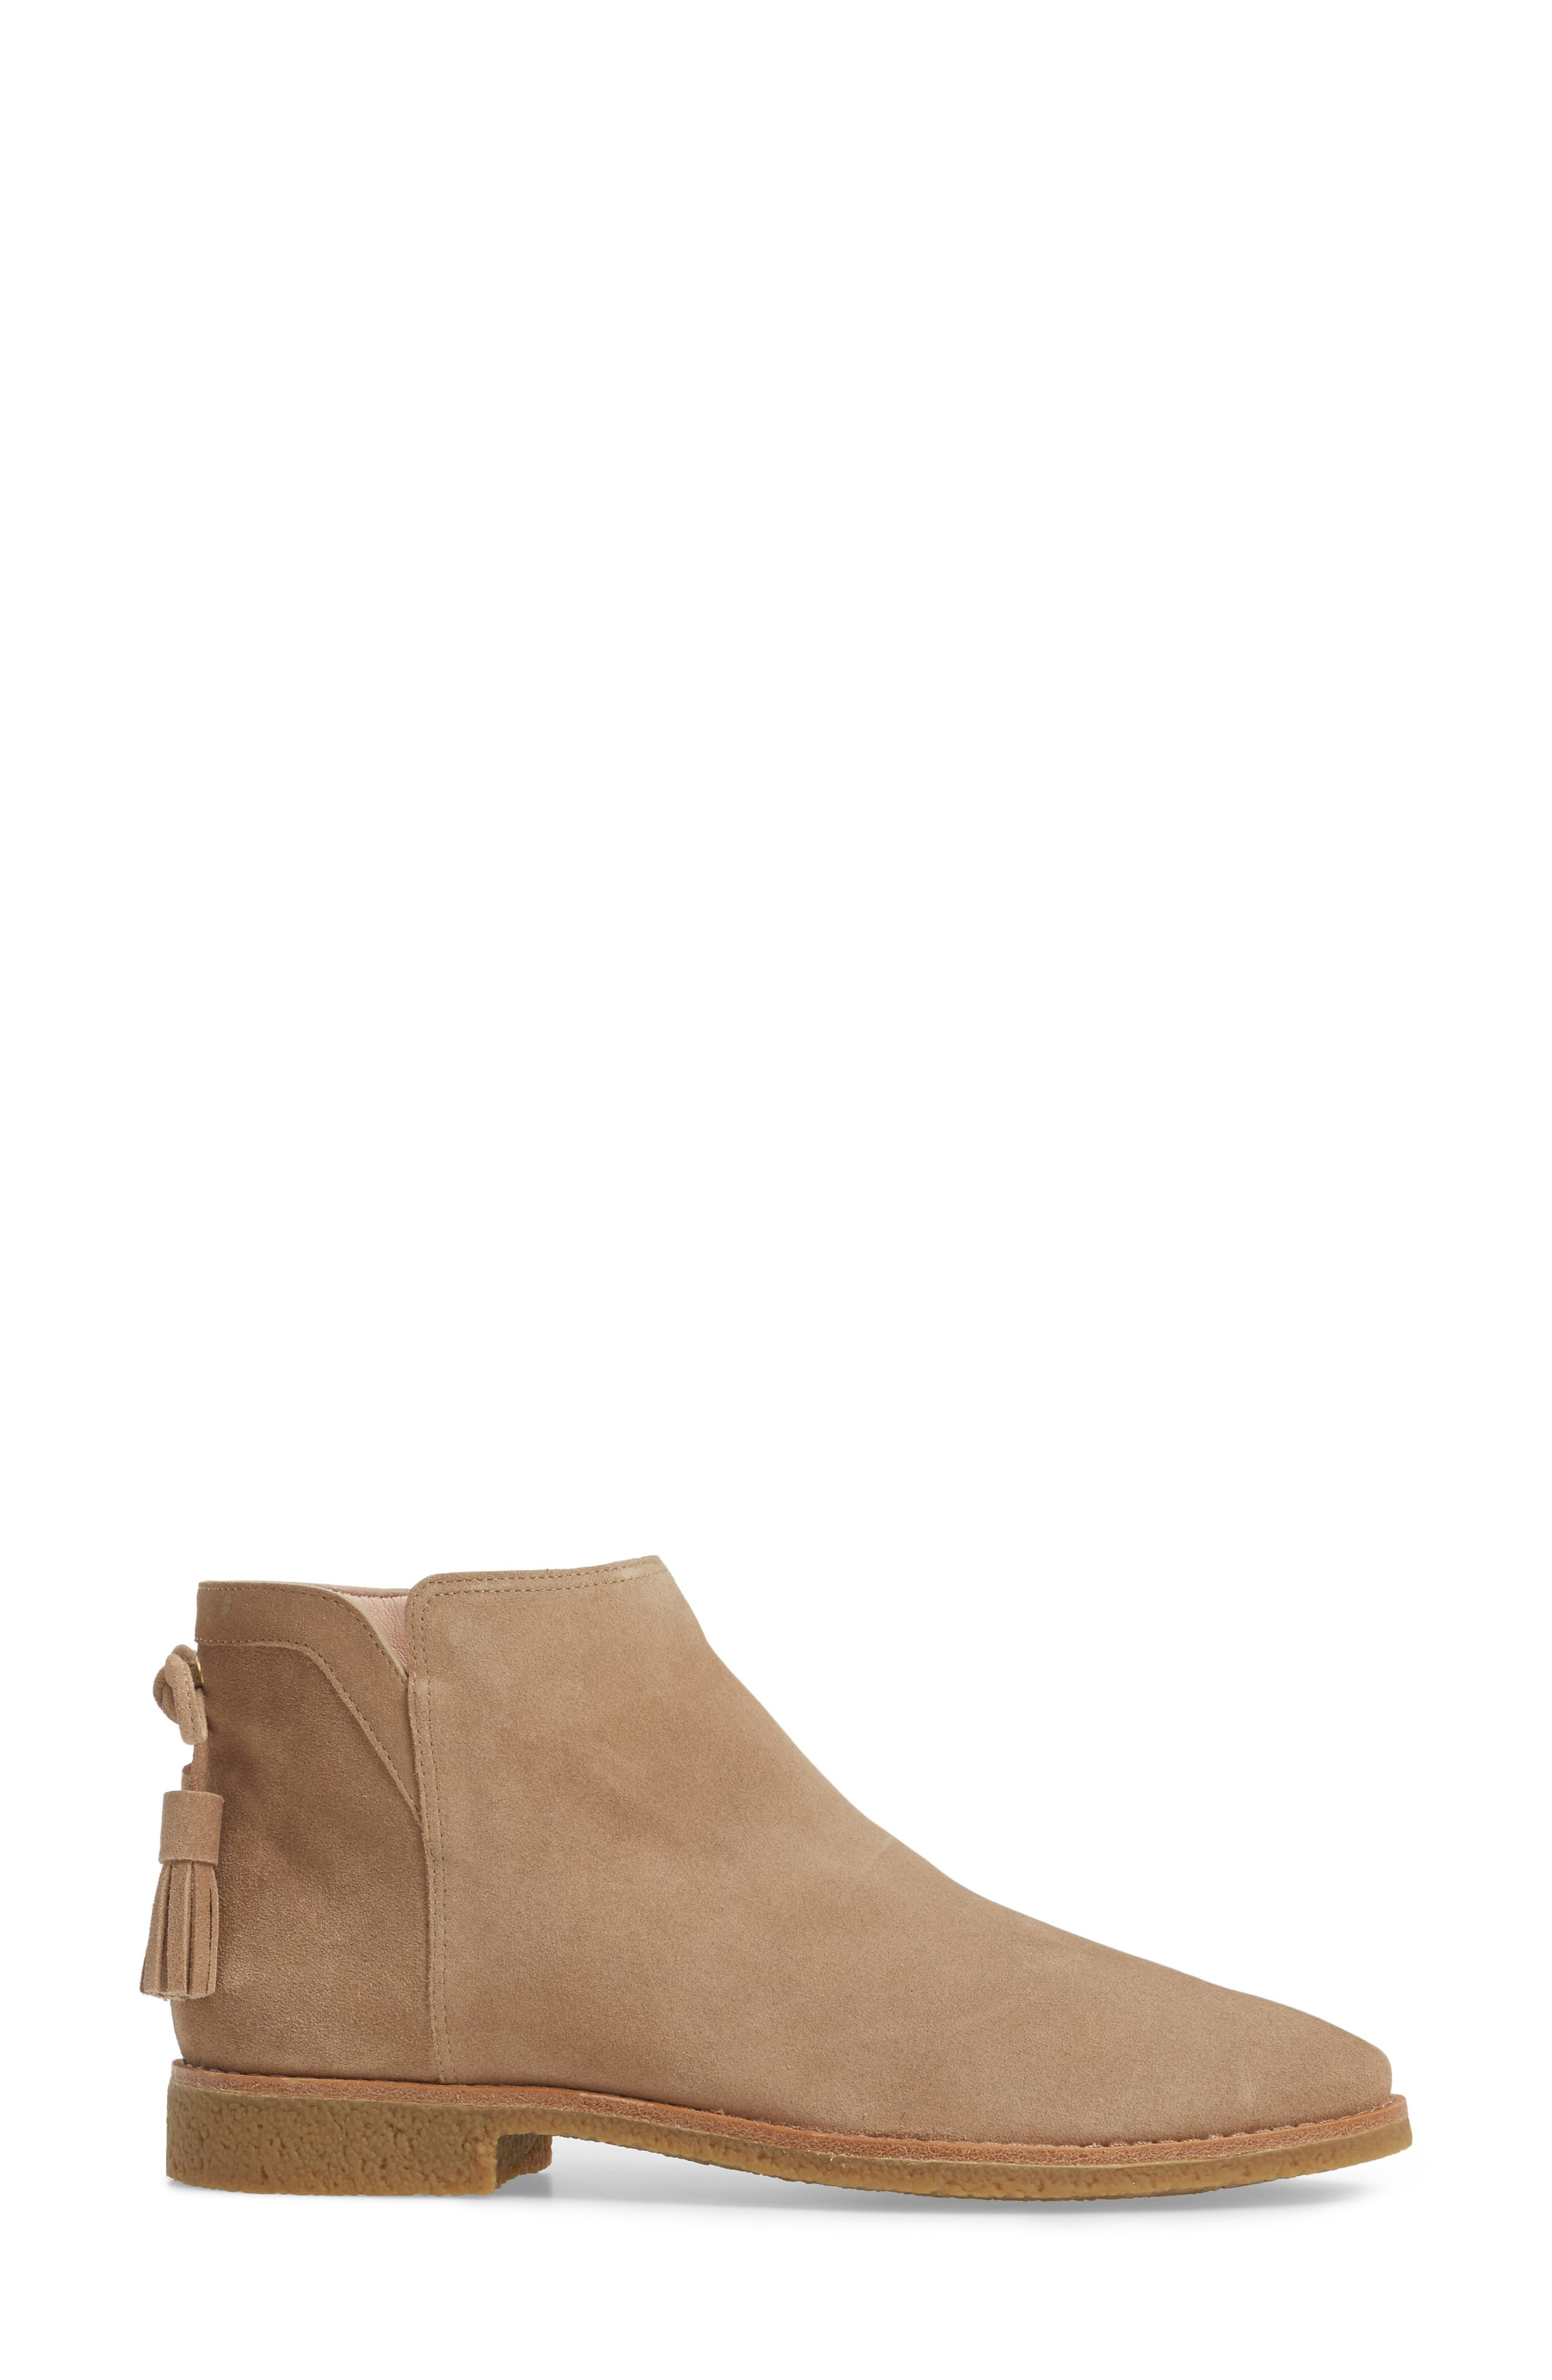 belleville bootie,                             Alternate thumbnail 3, color,                             Desert Suede